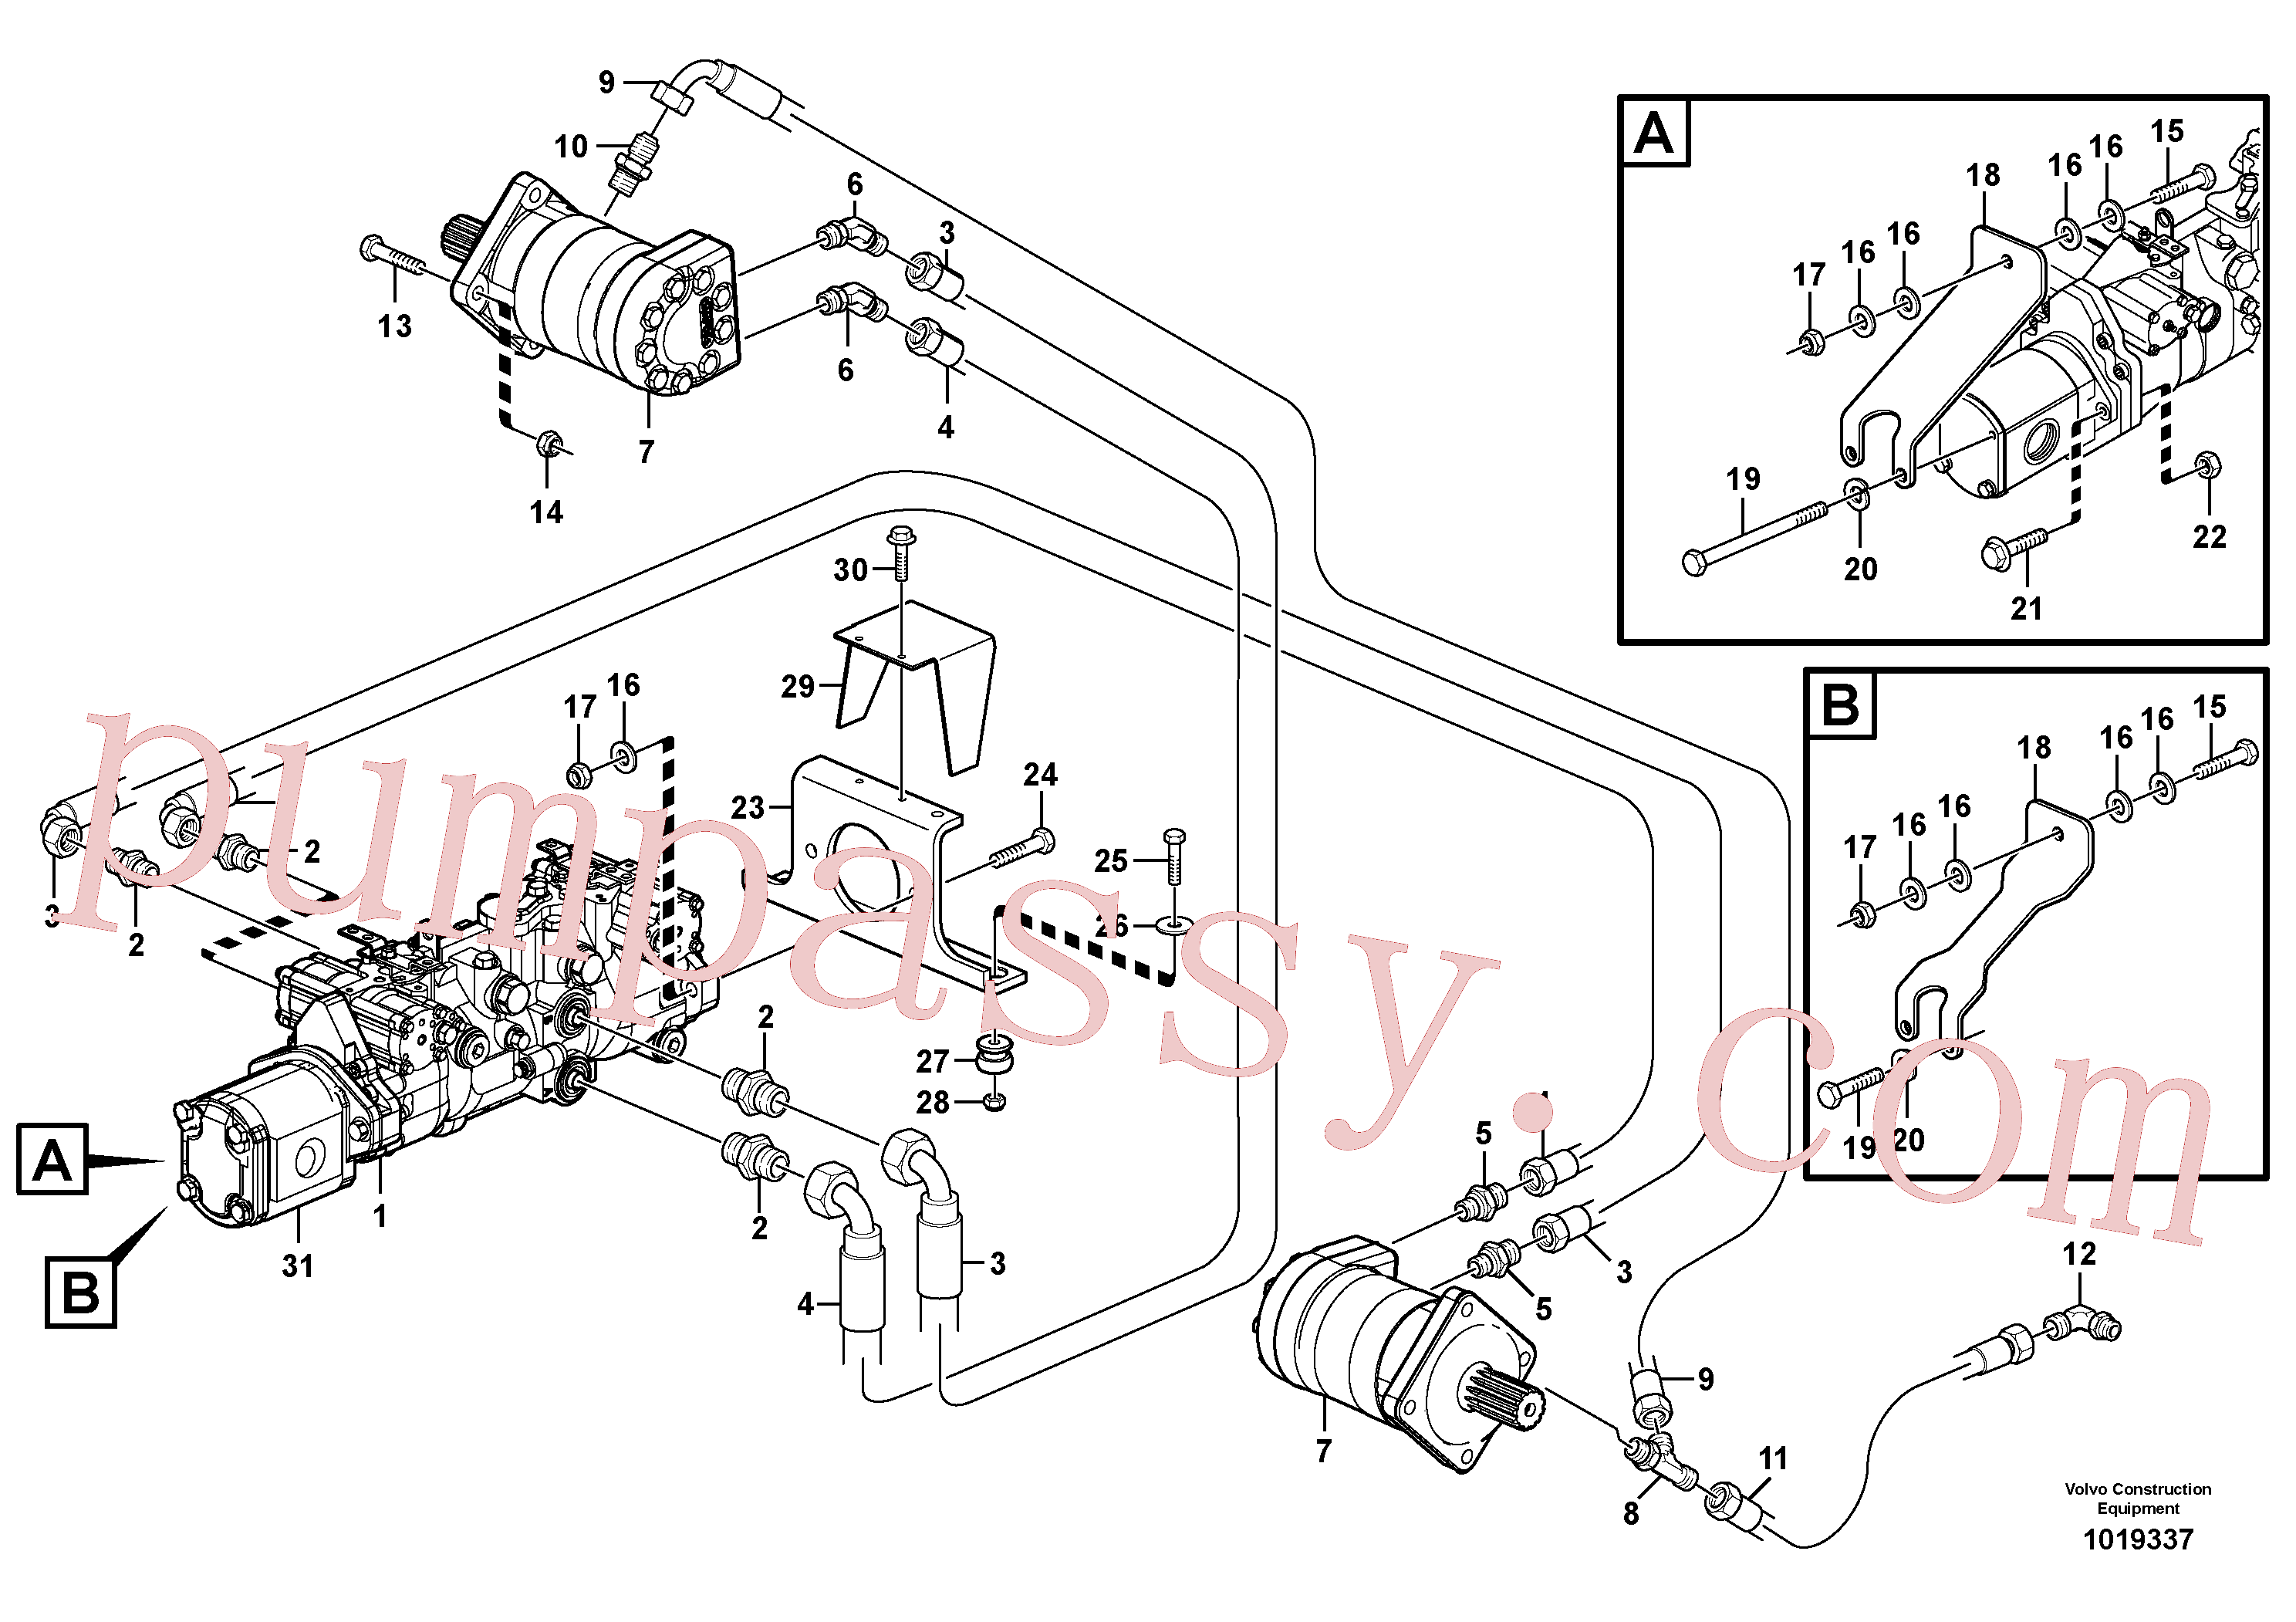 VOE11841125 for Volvo Hydraulic system Transport(1019337 assembly)